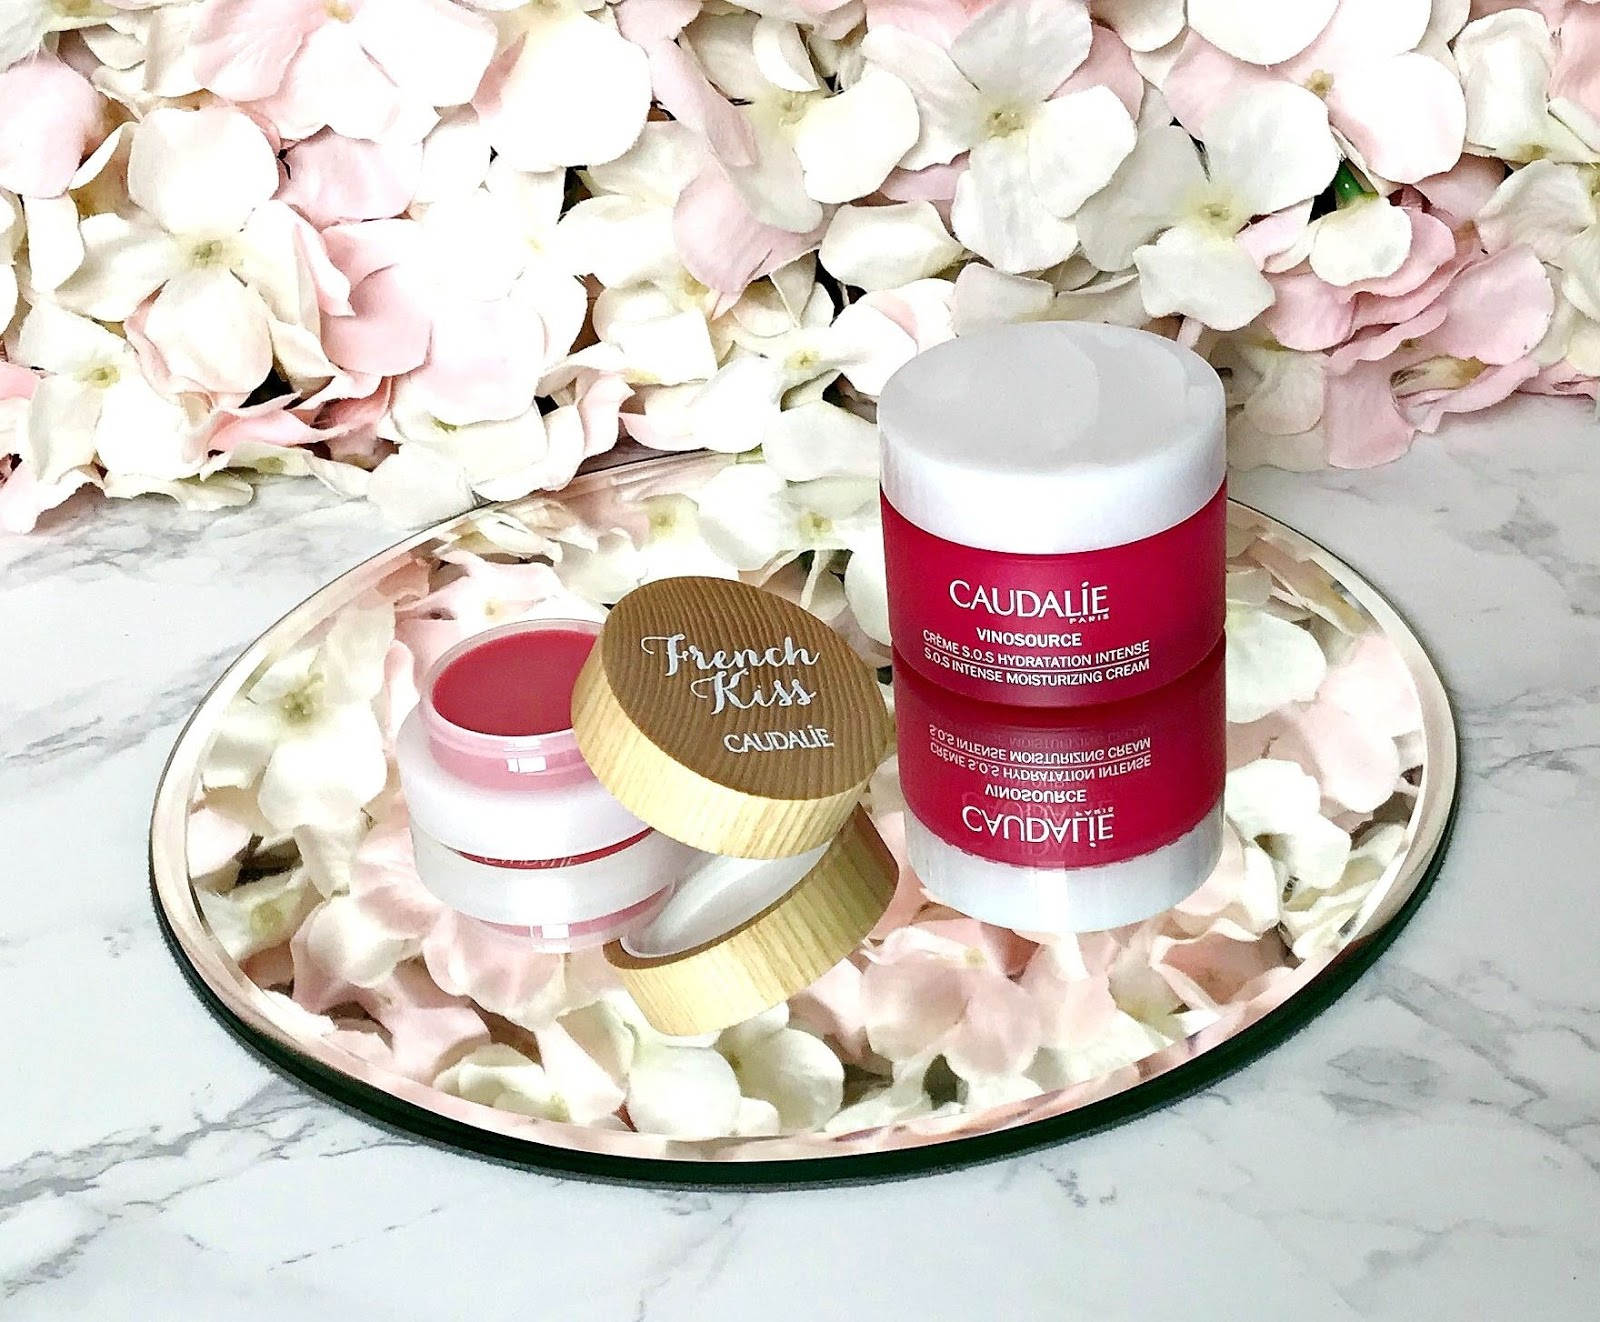 Caudalie Vinosource SOS Intense Moisturising Cream Review